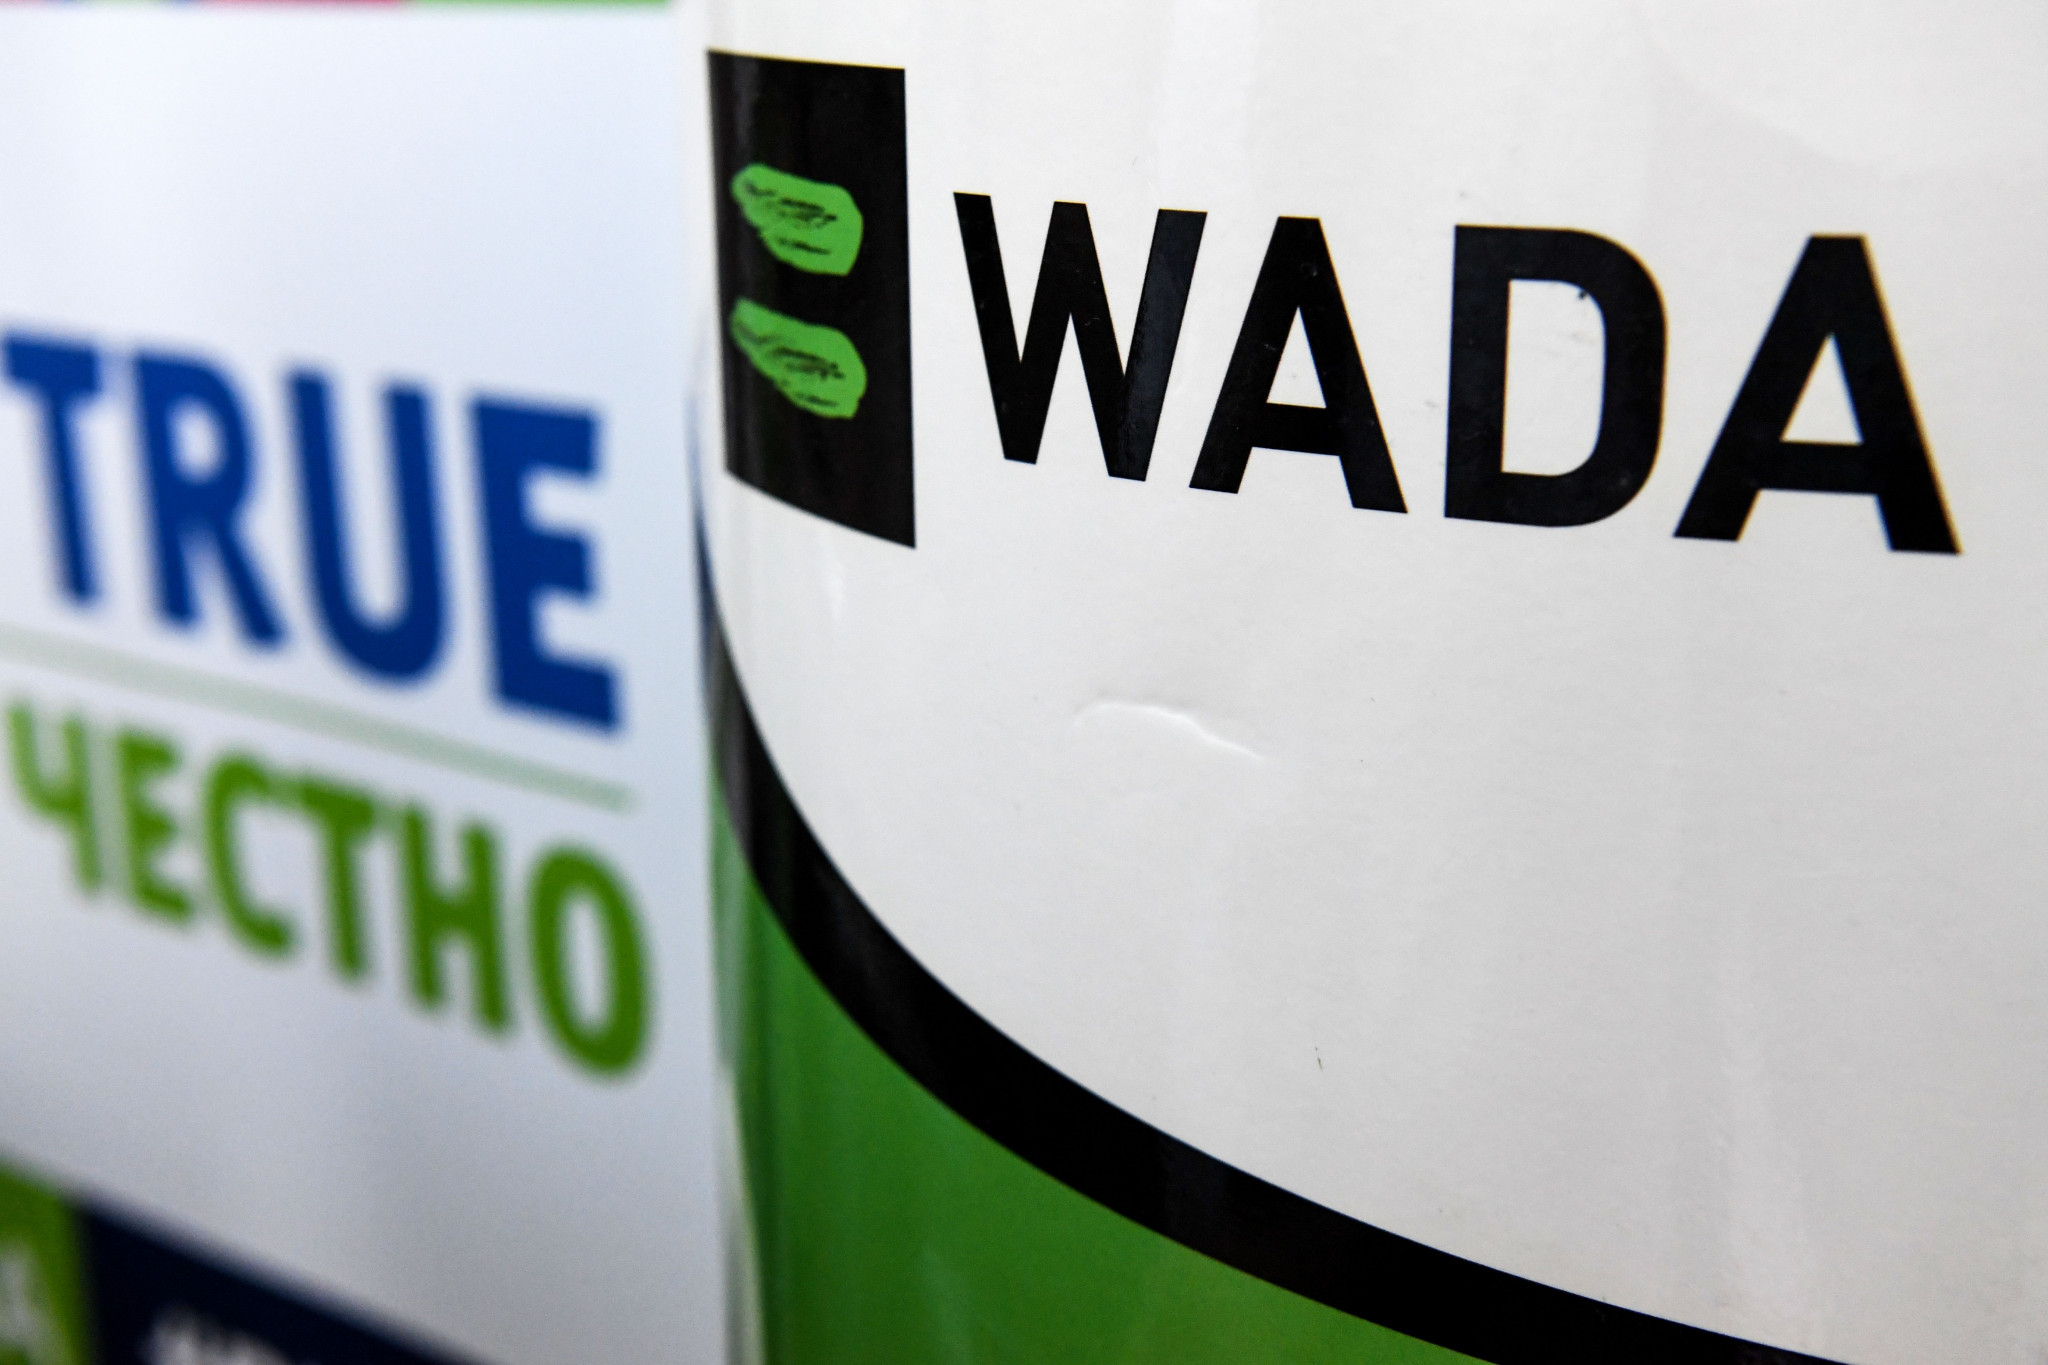 The IPC issued new anti-doping testing guidelines after WADA updated their guidance ©Getty Images